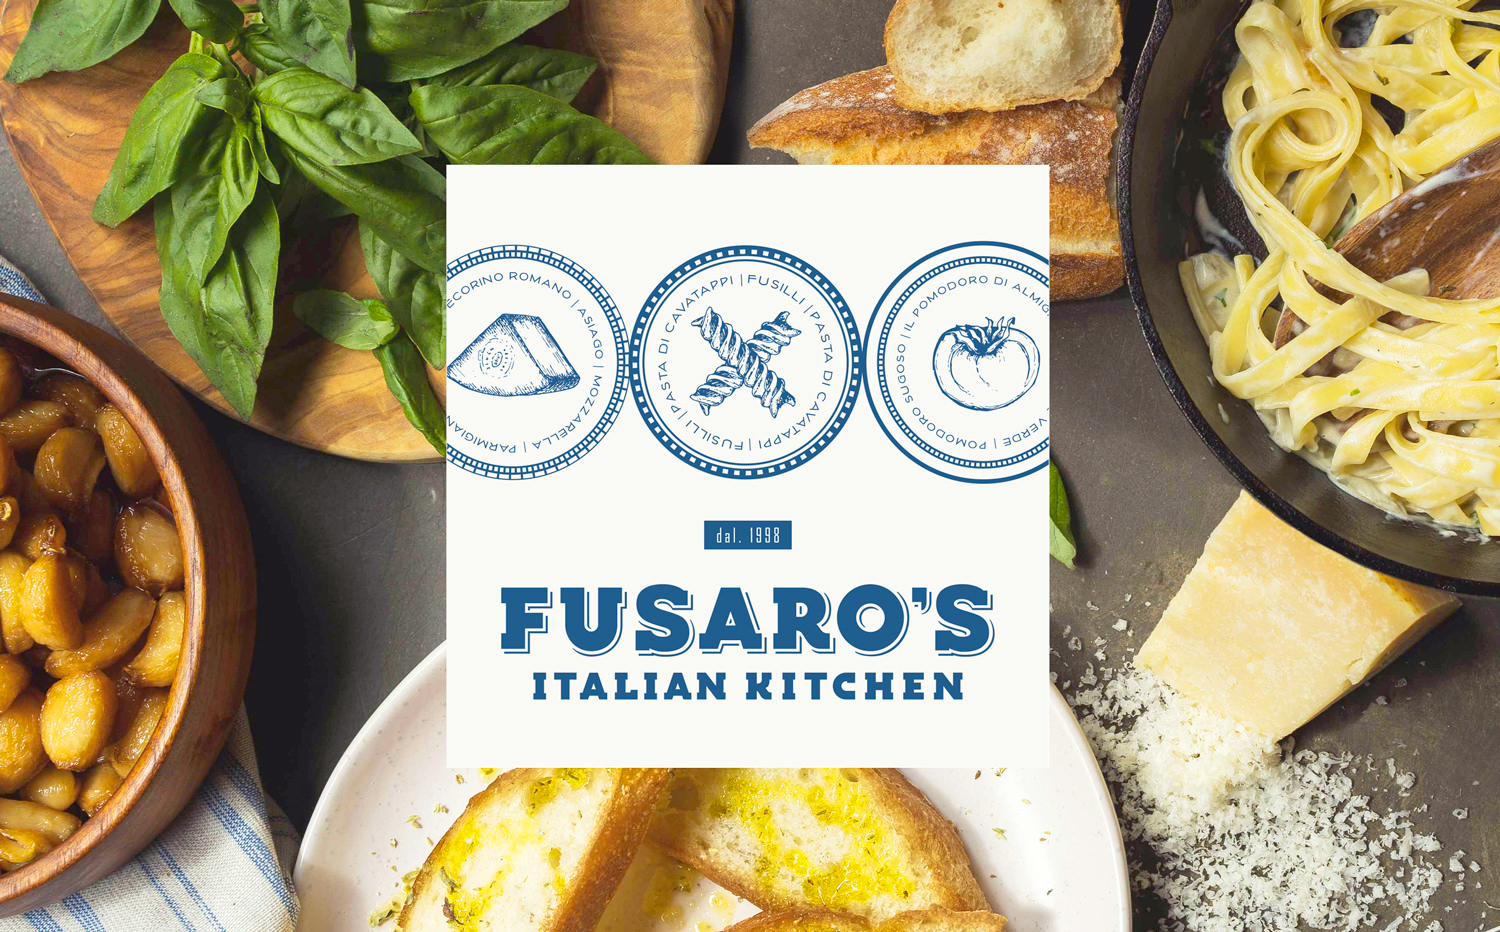 Chad Roberts Design Ltd. Fusaro's Italian Kitchen Brand Identity Design